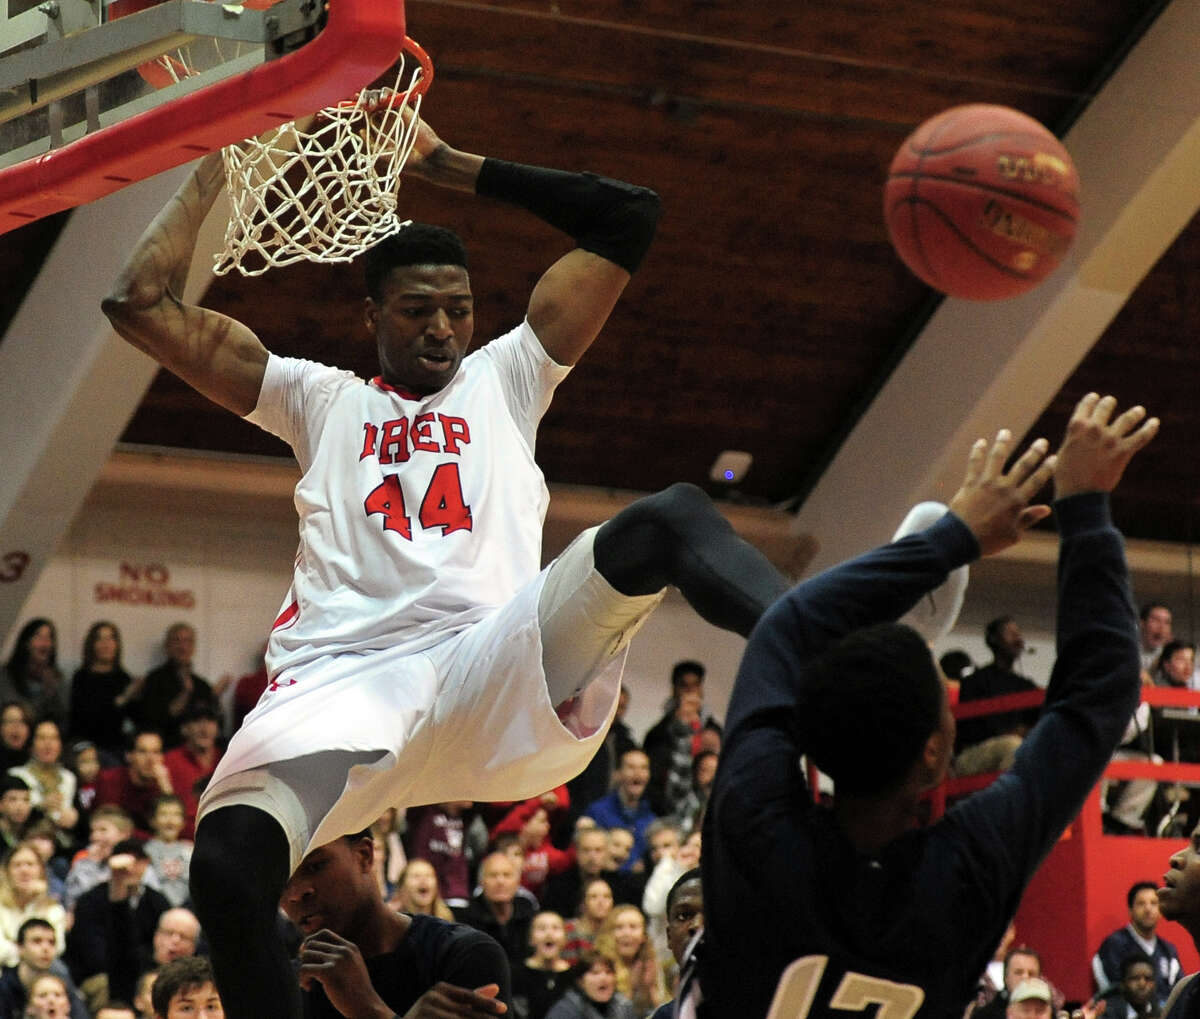 Fairfield Prep's Paschal Chukwu follows through on a slam dunks, during boys basketball action against Hillhouse in Fairfield, Conn. on Saturday January 4, 2014.